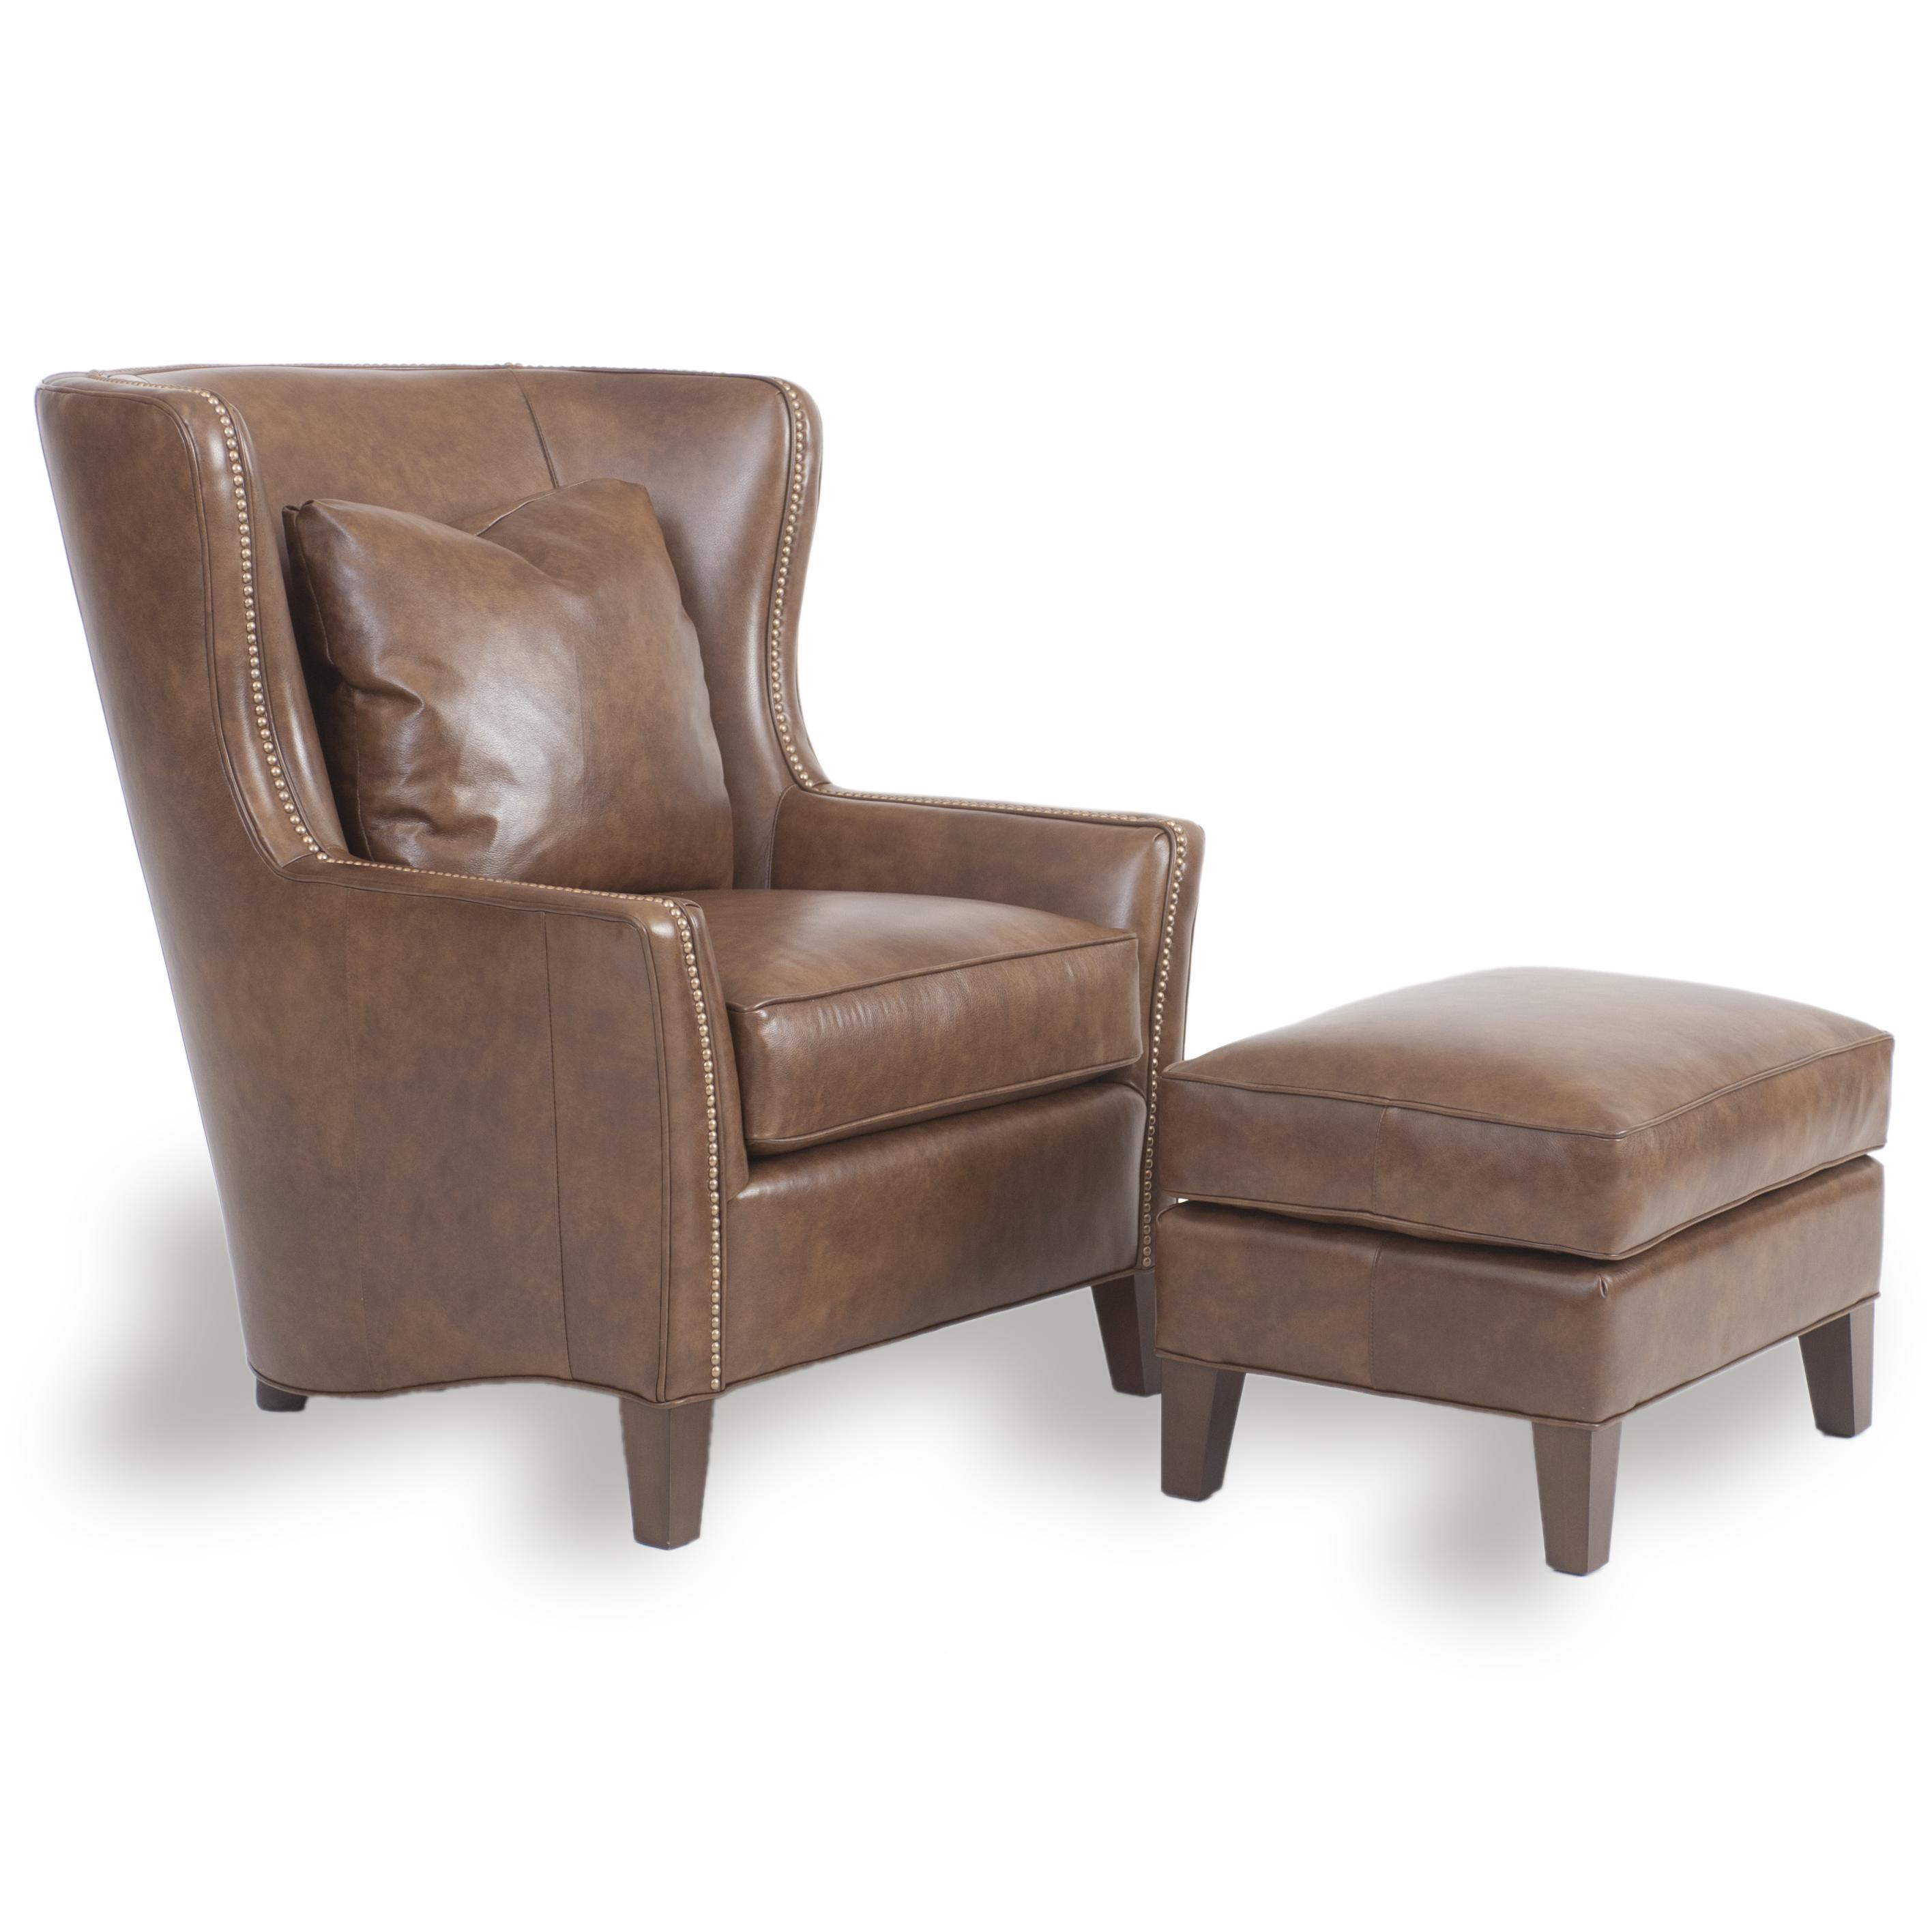 Accent Chairs and Ottomans SB Wingback Chair and Ottoman by Smith Brothers at Mueller Furniture